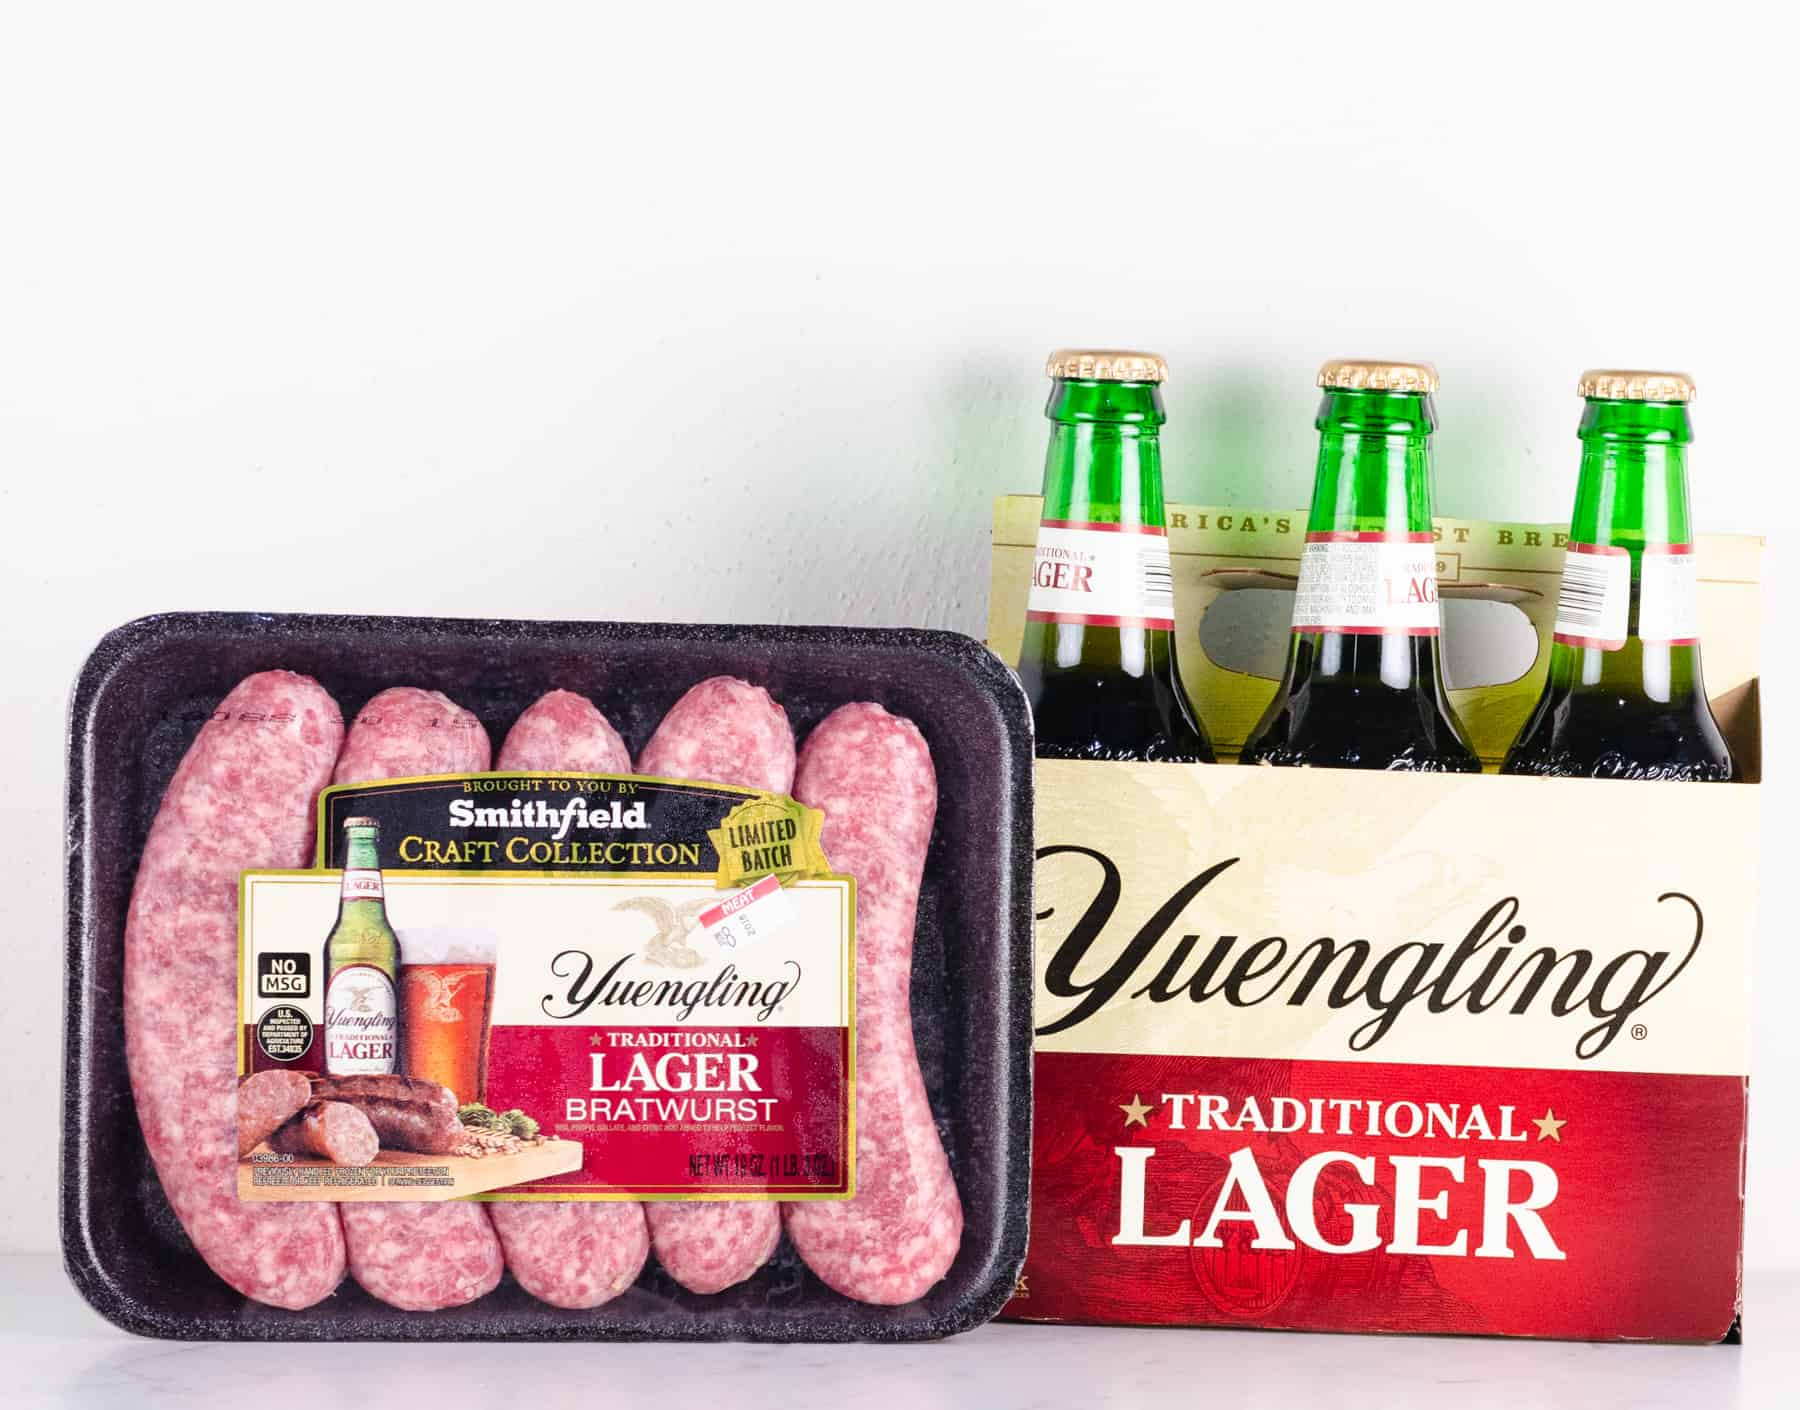 Raw Yuengling Lager Bratwurst with a 6-pack of Yuengling traditional lager